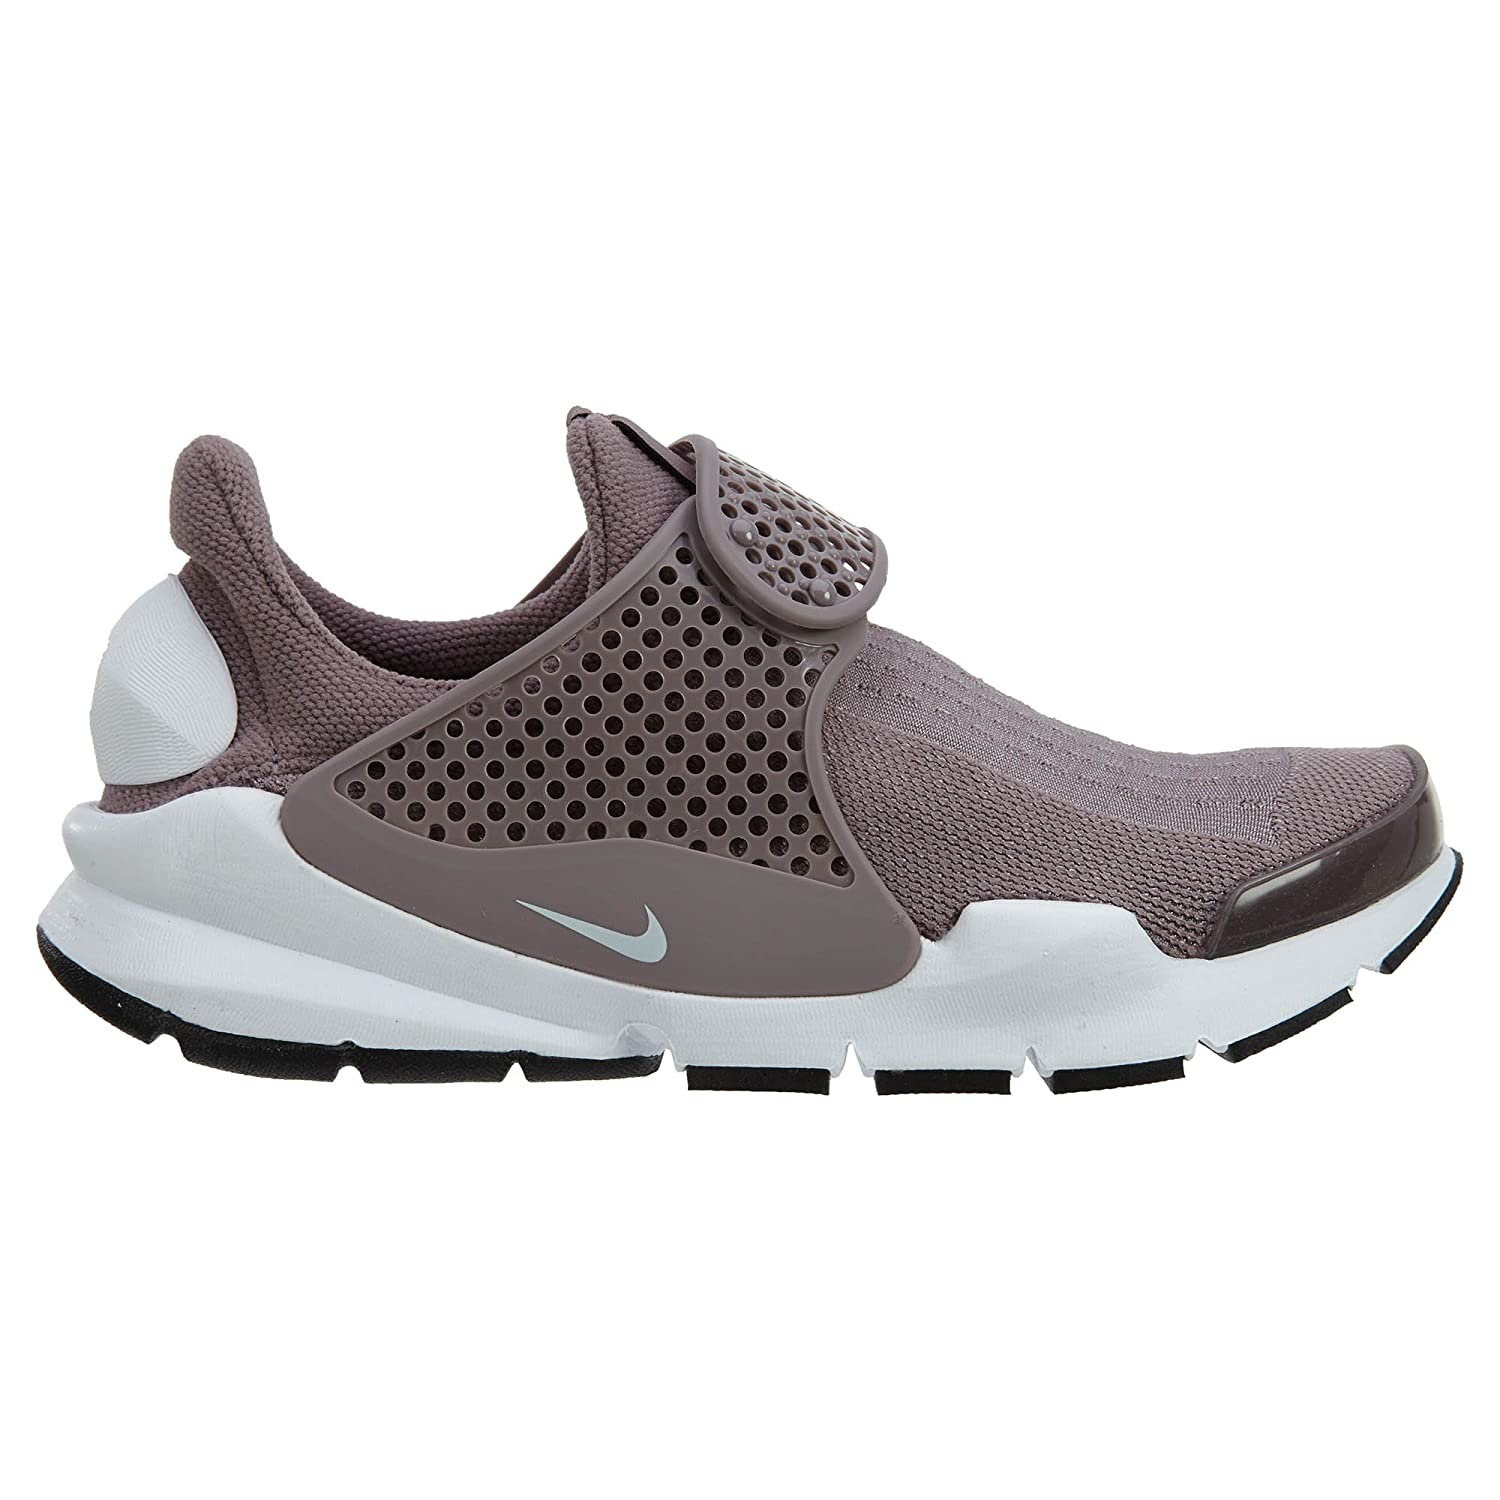 NIKE Womens Sock Dart Running Shoes B073S3K1BR 6 B(M) US